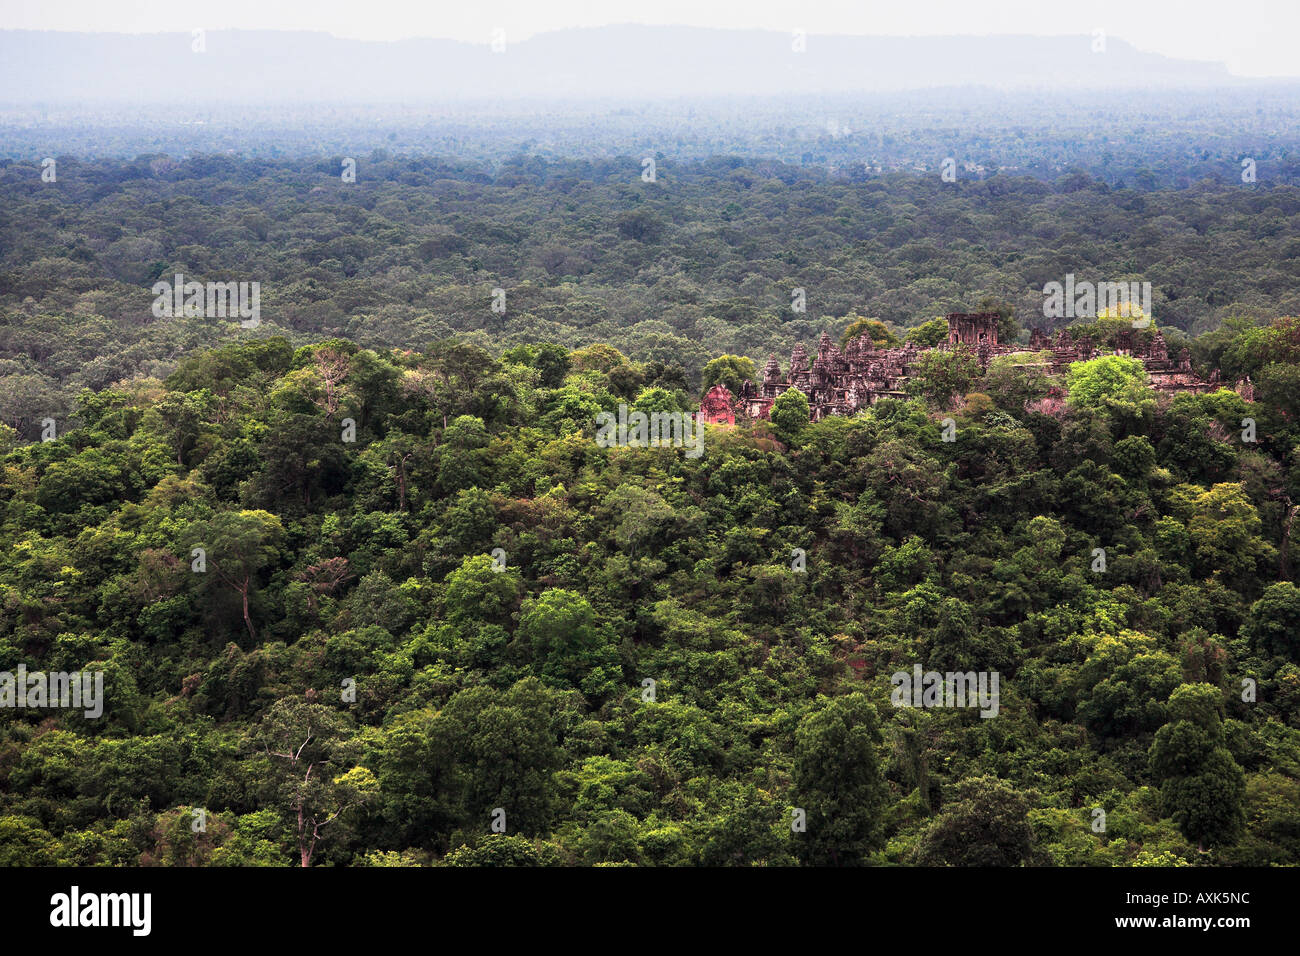 forest landscape with plants tress nature distance far hills mountains - Stock Image